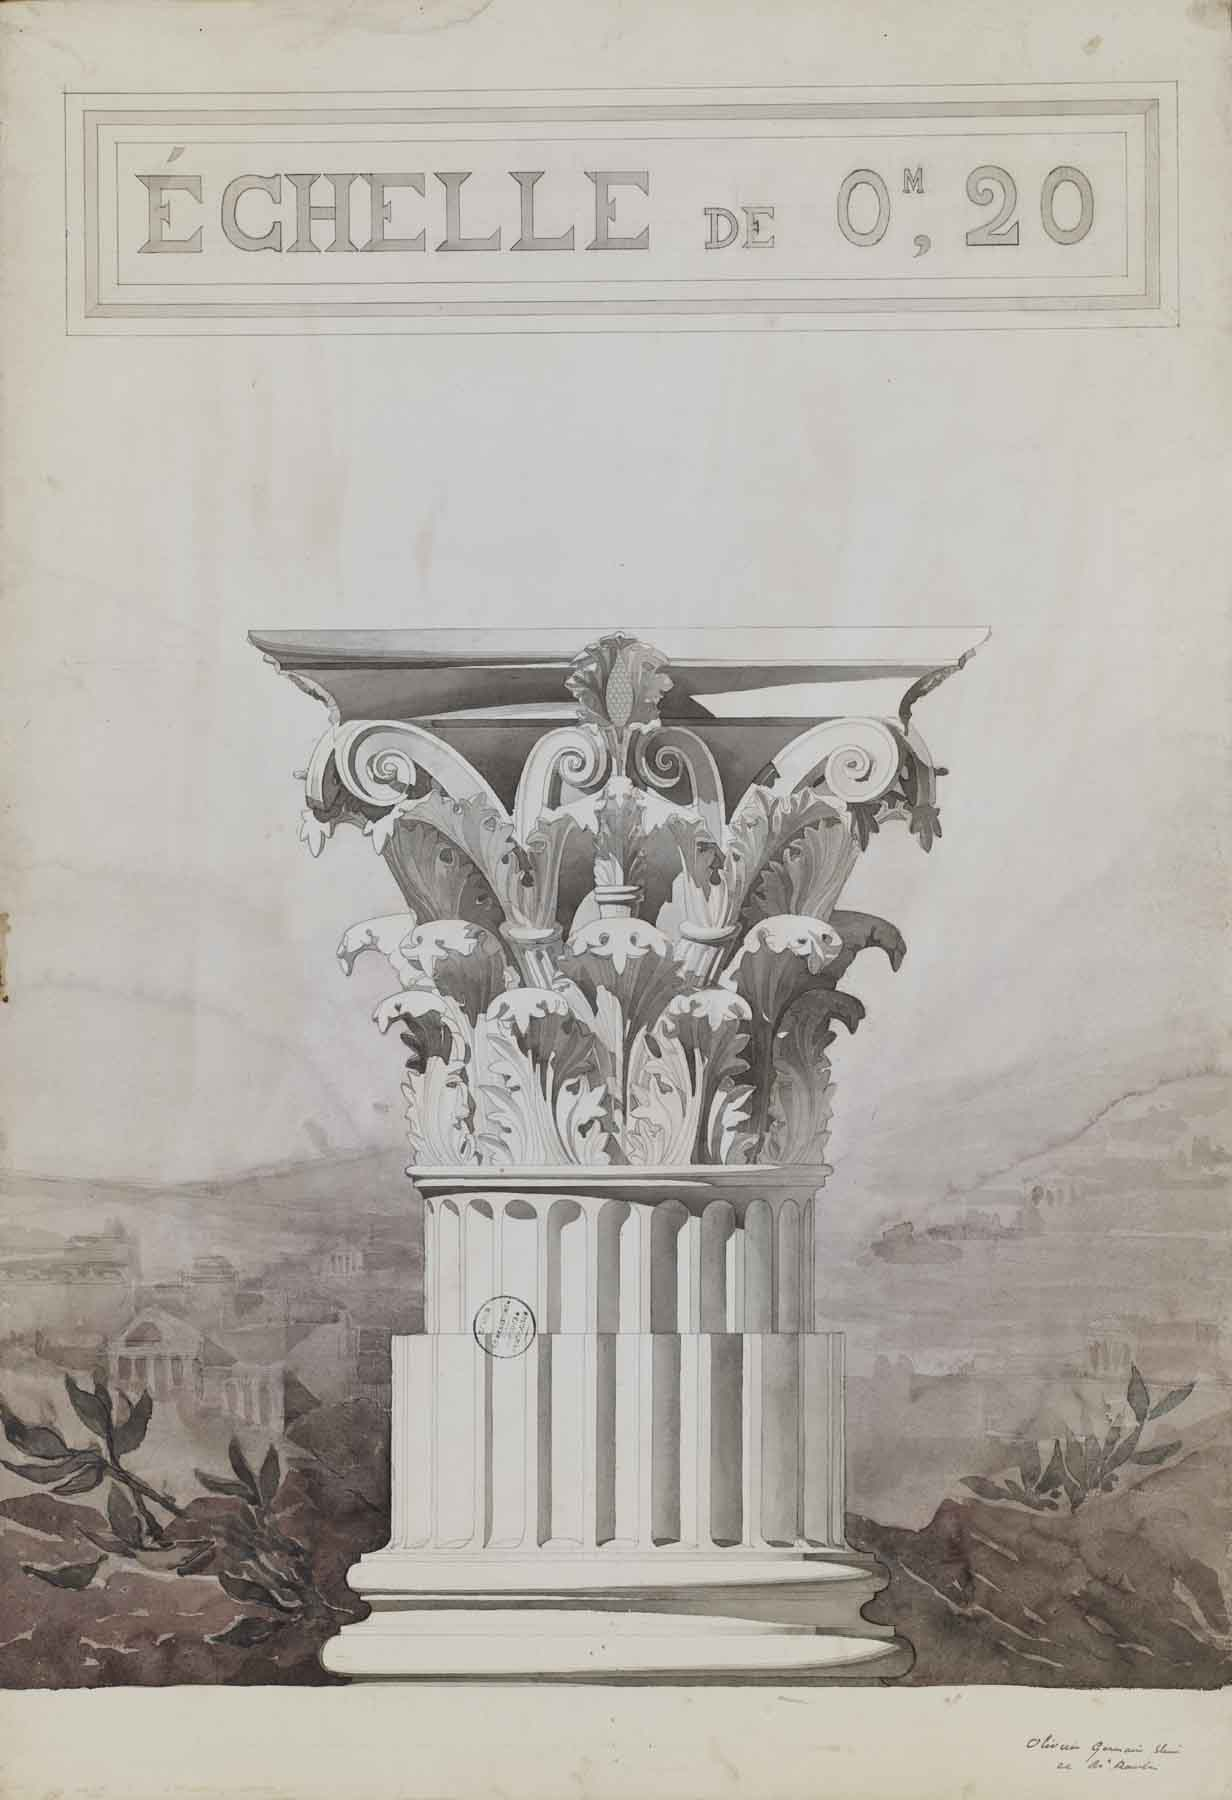 """Jules-Germain Olivier (French, 1869-1940),  Study of a Corinthian Column Capital,  1890-1900, pencil and watercolor on paper, 43 3/4 x 31 7/8"""" framed"""